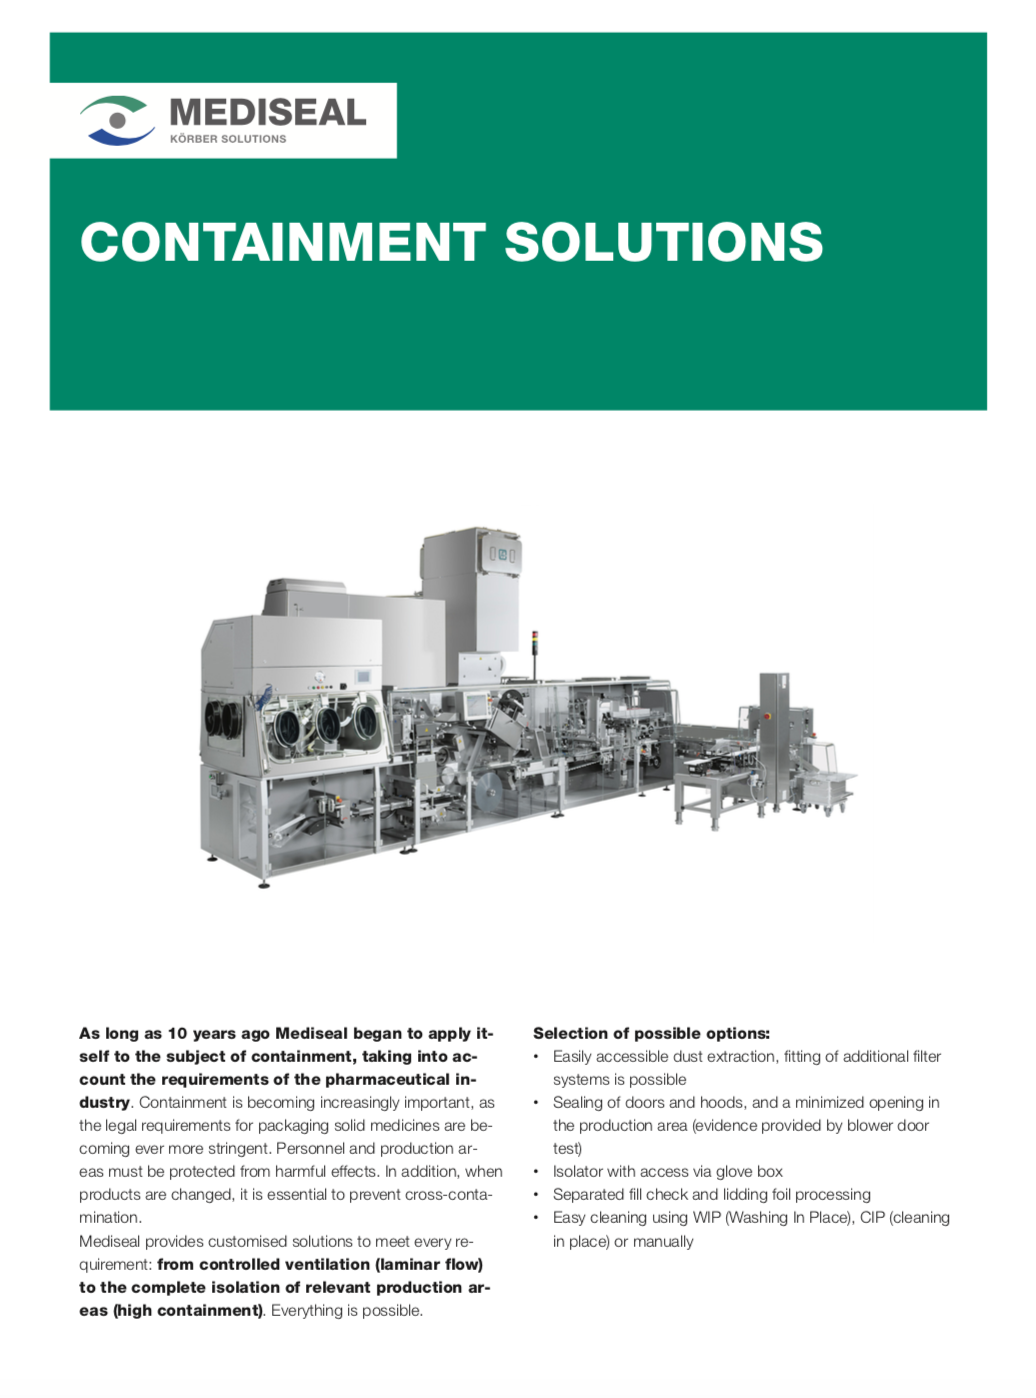 Mediseal Containment Solutions